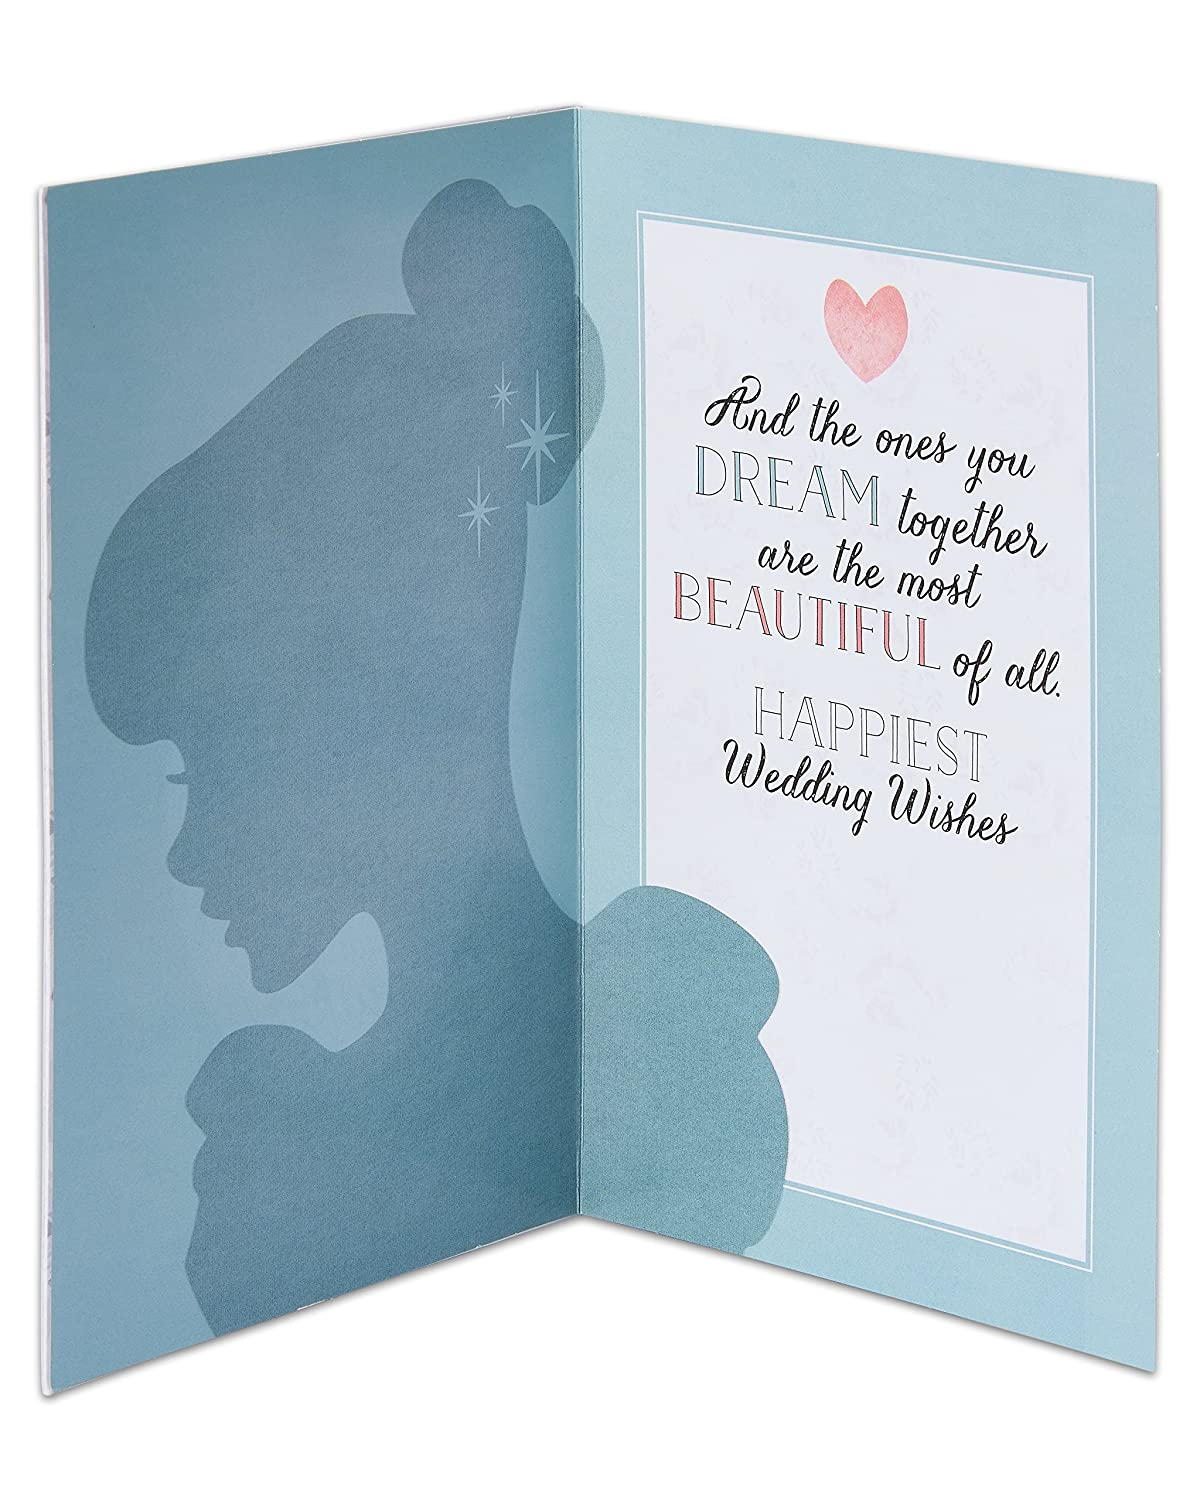 American Greetings Funny Mr And Mrs Awesome Wedding Card With